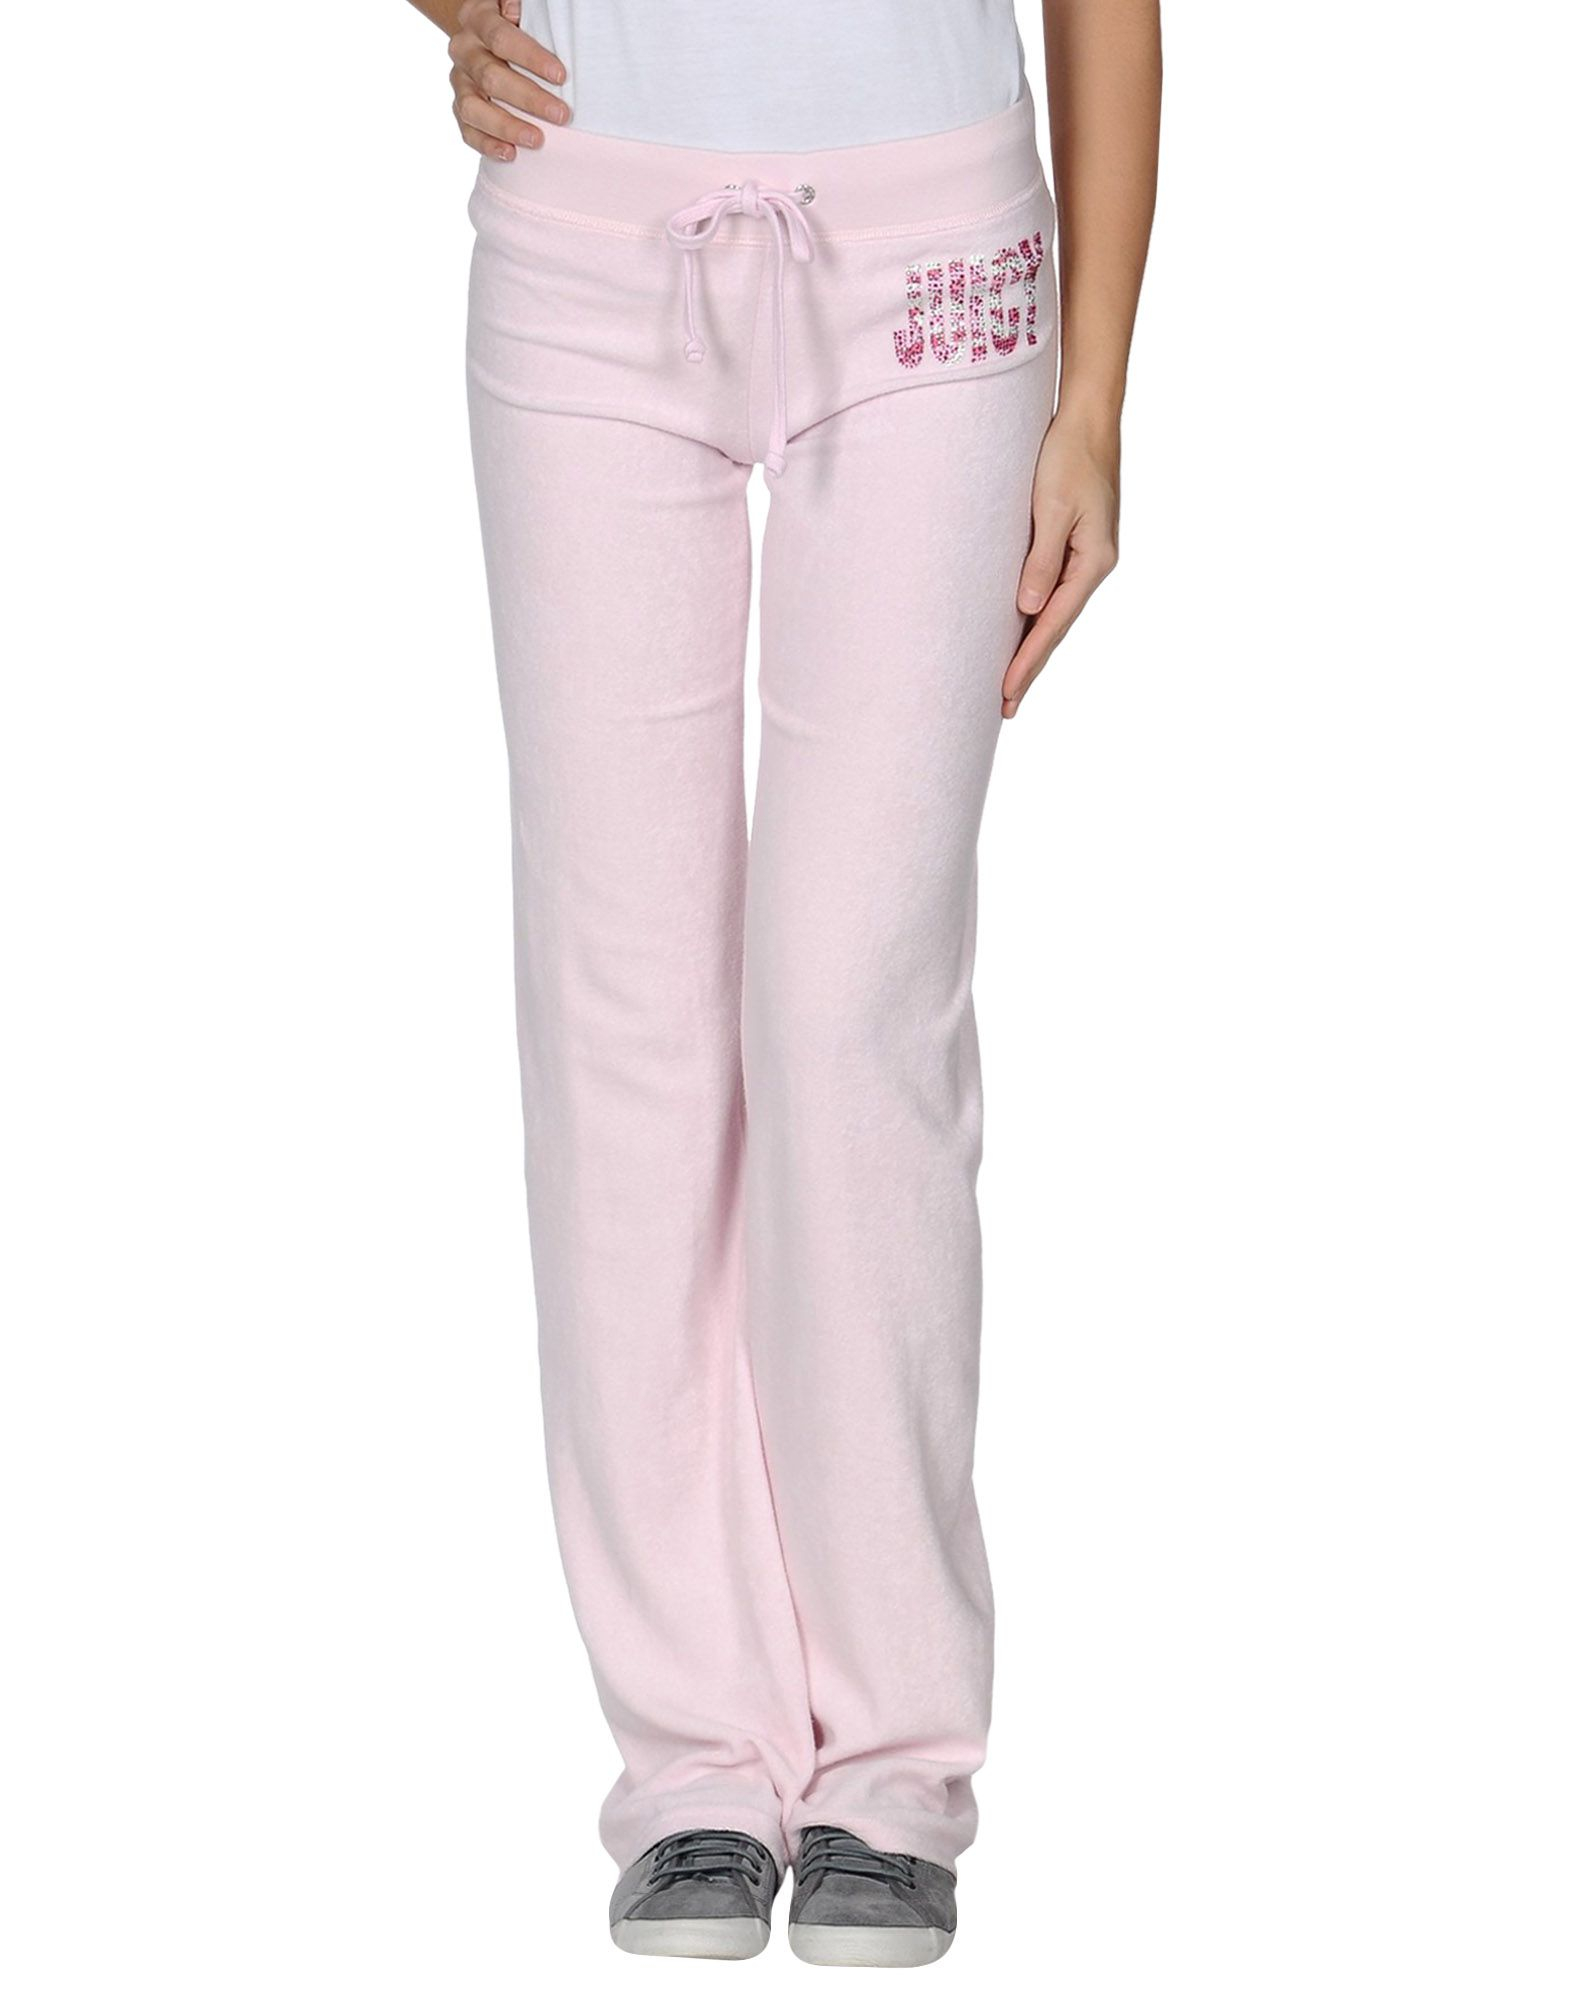 Find light pink pants at ShopStyle. Shop the latest collection of light pink pants from the most popular stores - all in one place.